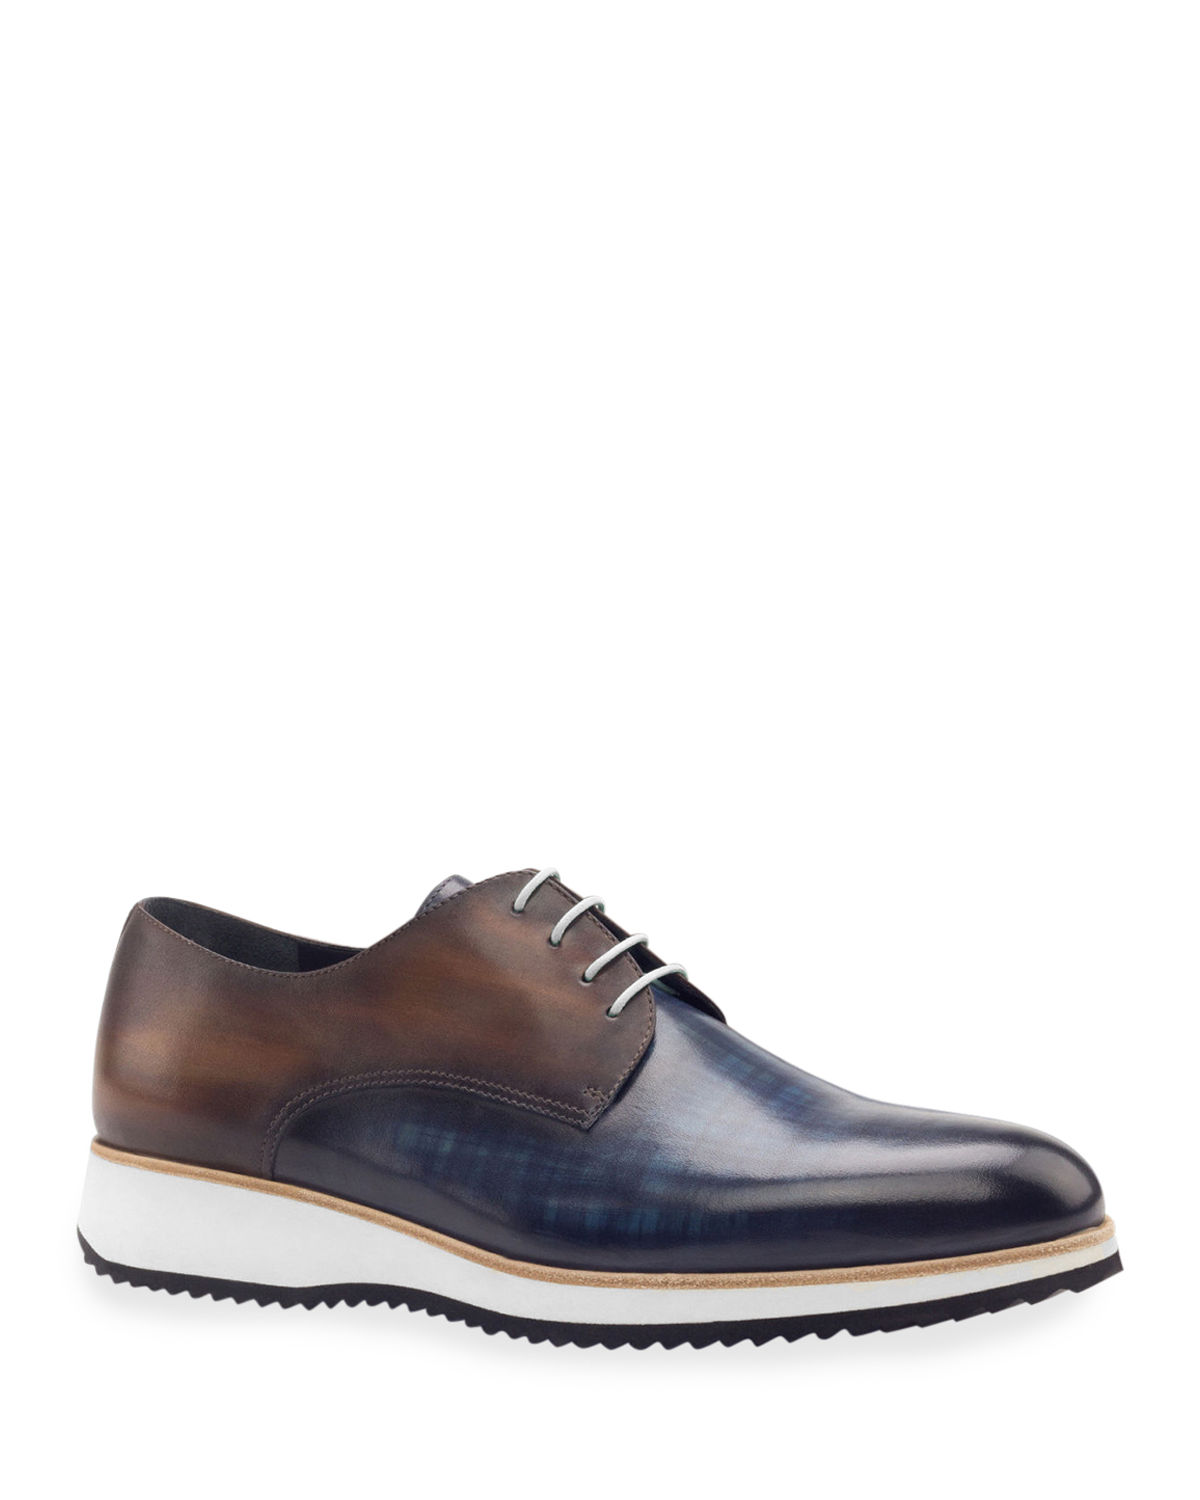 Men's Modus Two-Tone Patina Leather Derby Sneakers